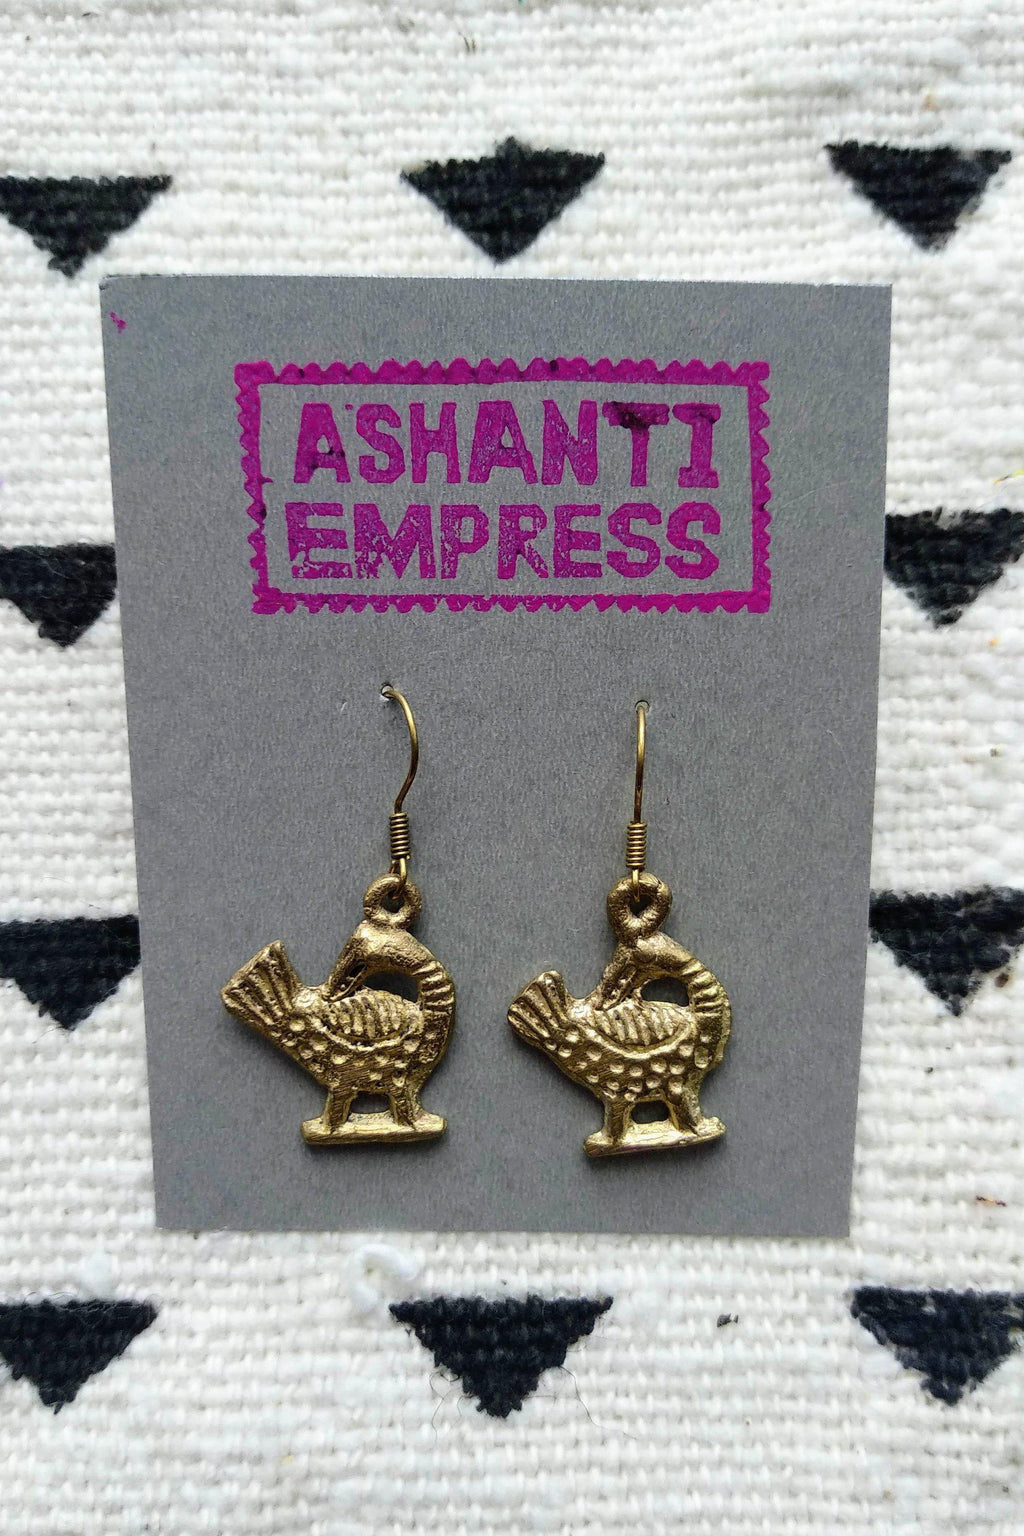 Ashanti Brass Earrings / Sankofa Earrings / Statement Earrings / Tribal Earrings / Bohemian Jewelry / Brass Earring /Ethnic Jewelry /Adinkra